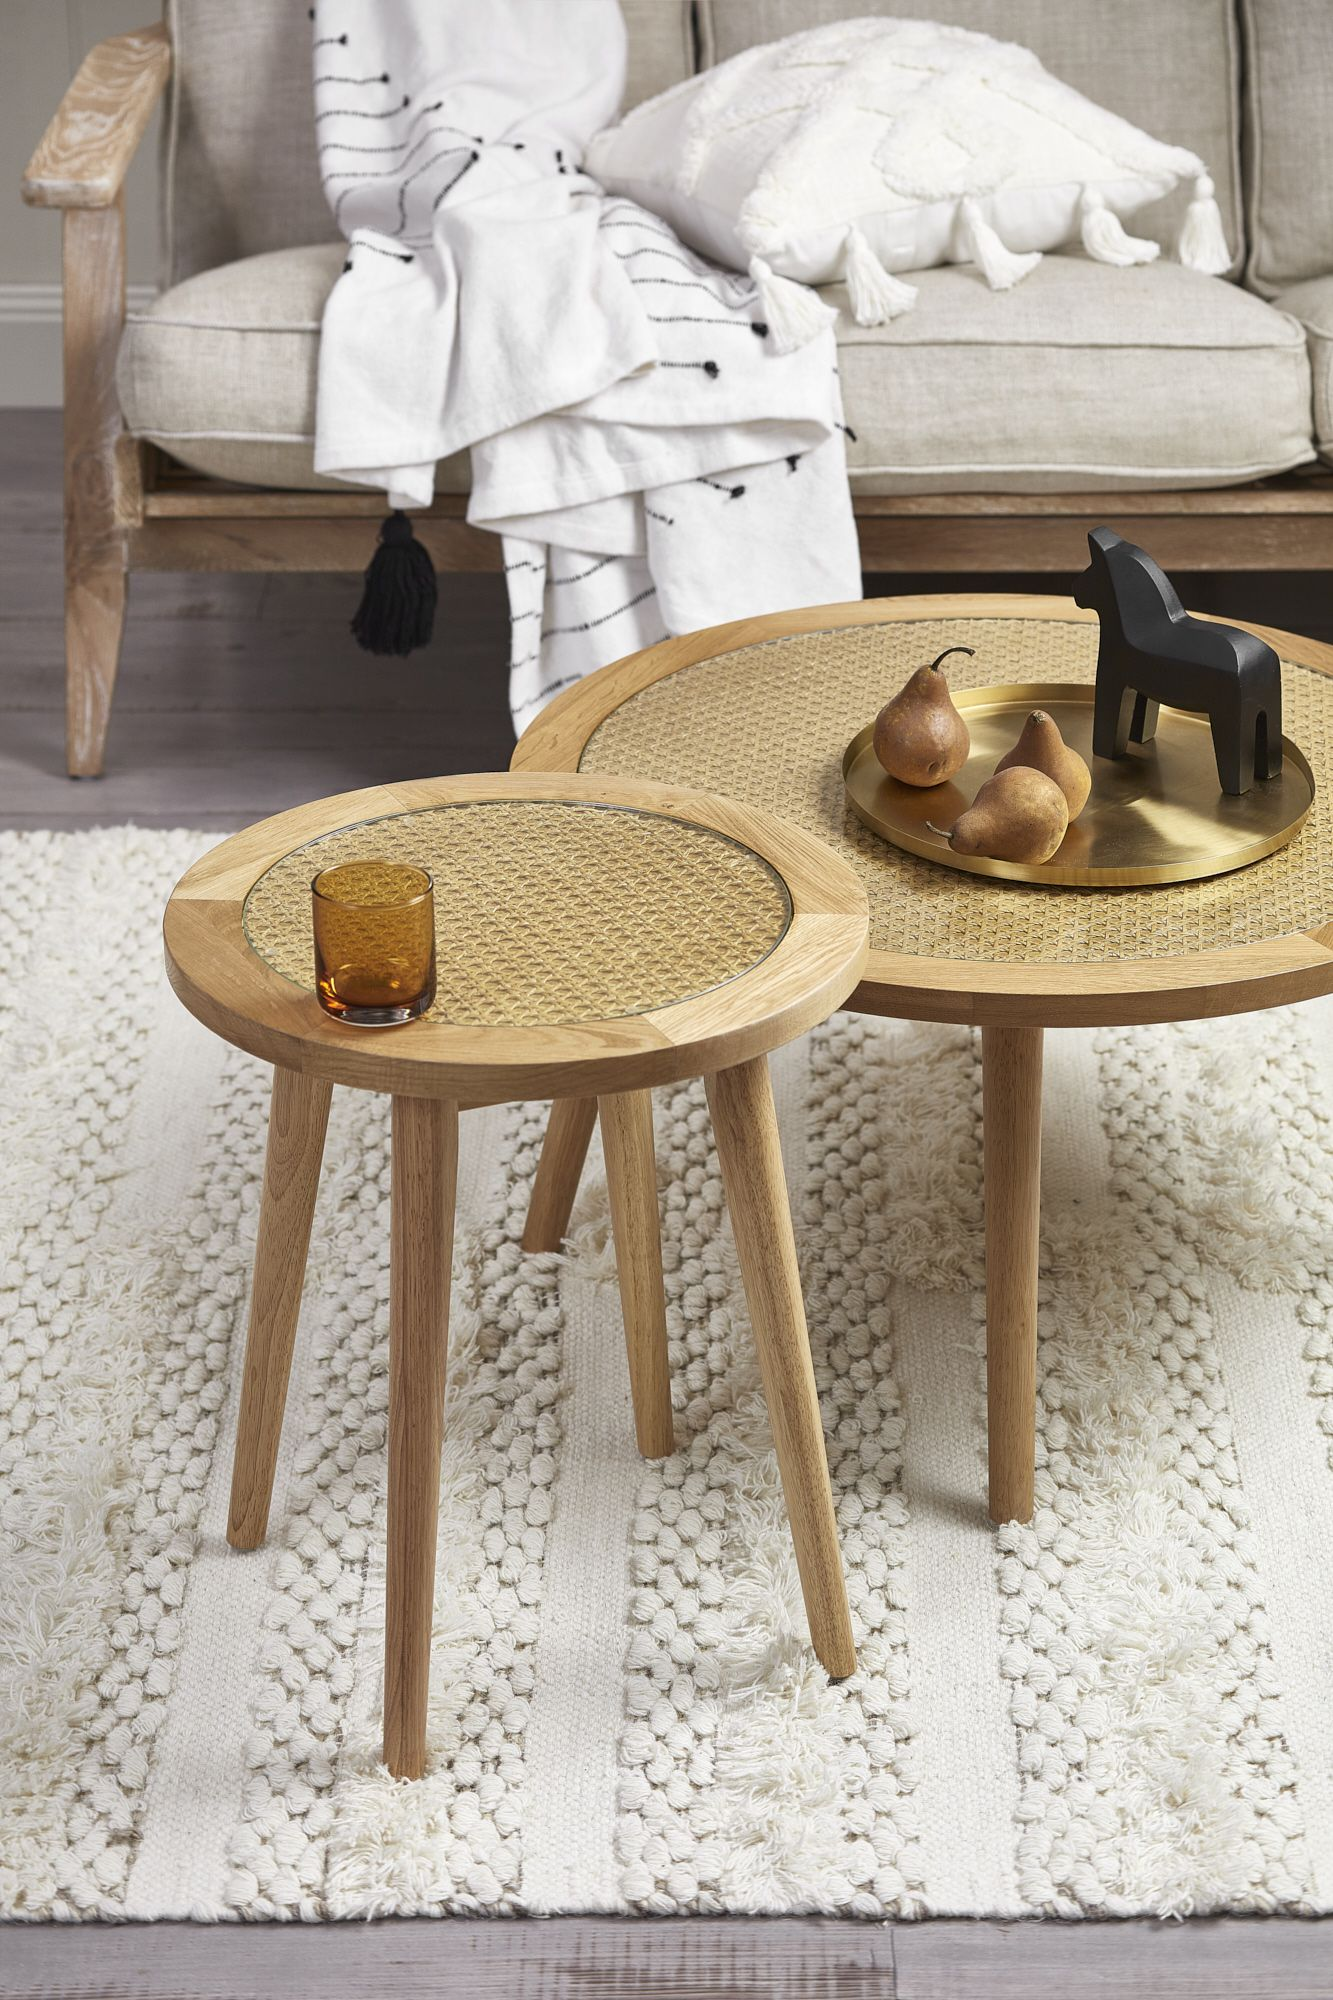 Weave A Touch Of Tropical With Woven Rattan Natural Textures And